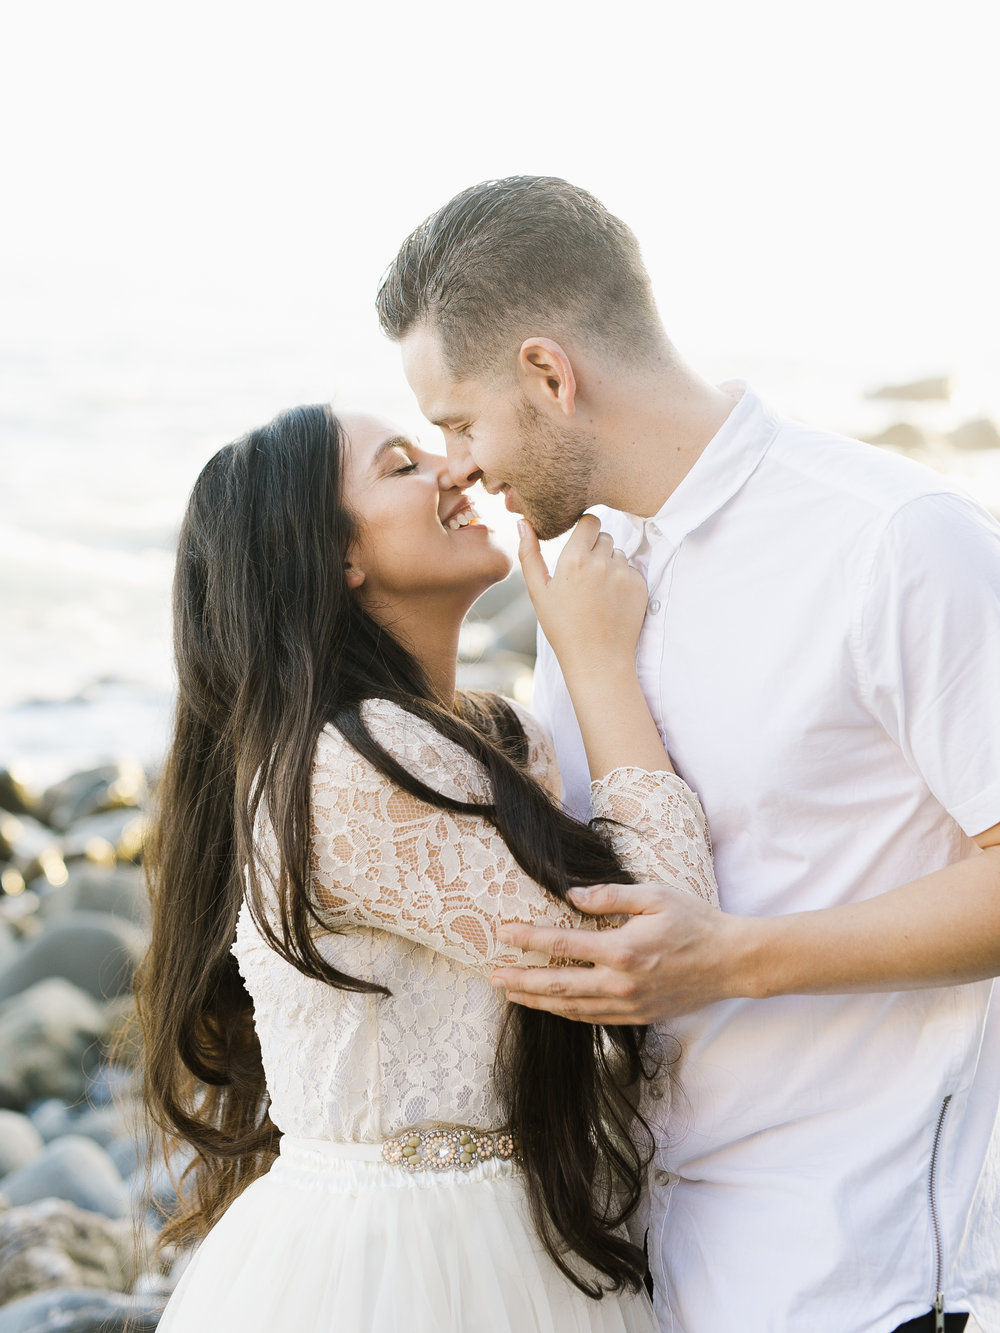 SAN_JUAN_MISSION_CAPISTRANO_ENGAGEMENT_SESSION_ BRYAN_SHAY_SNEAK_PEEK (19 of 11).jpg